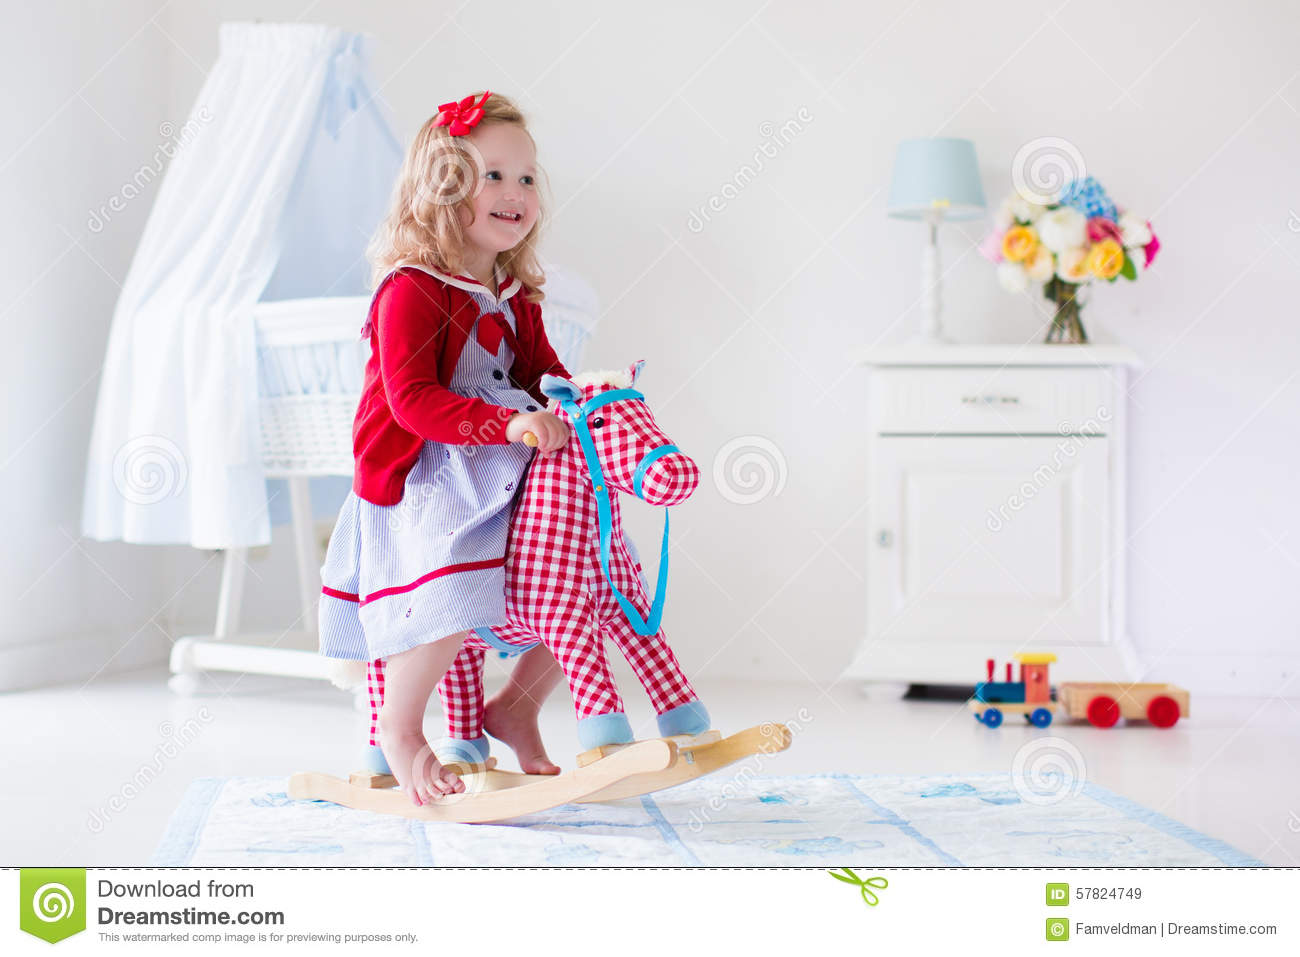 Little Girl Toys : Little girl riding a toy horse stock image